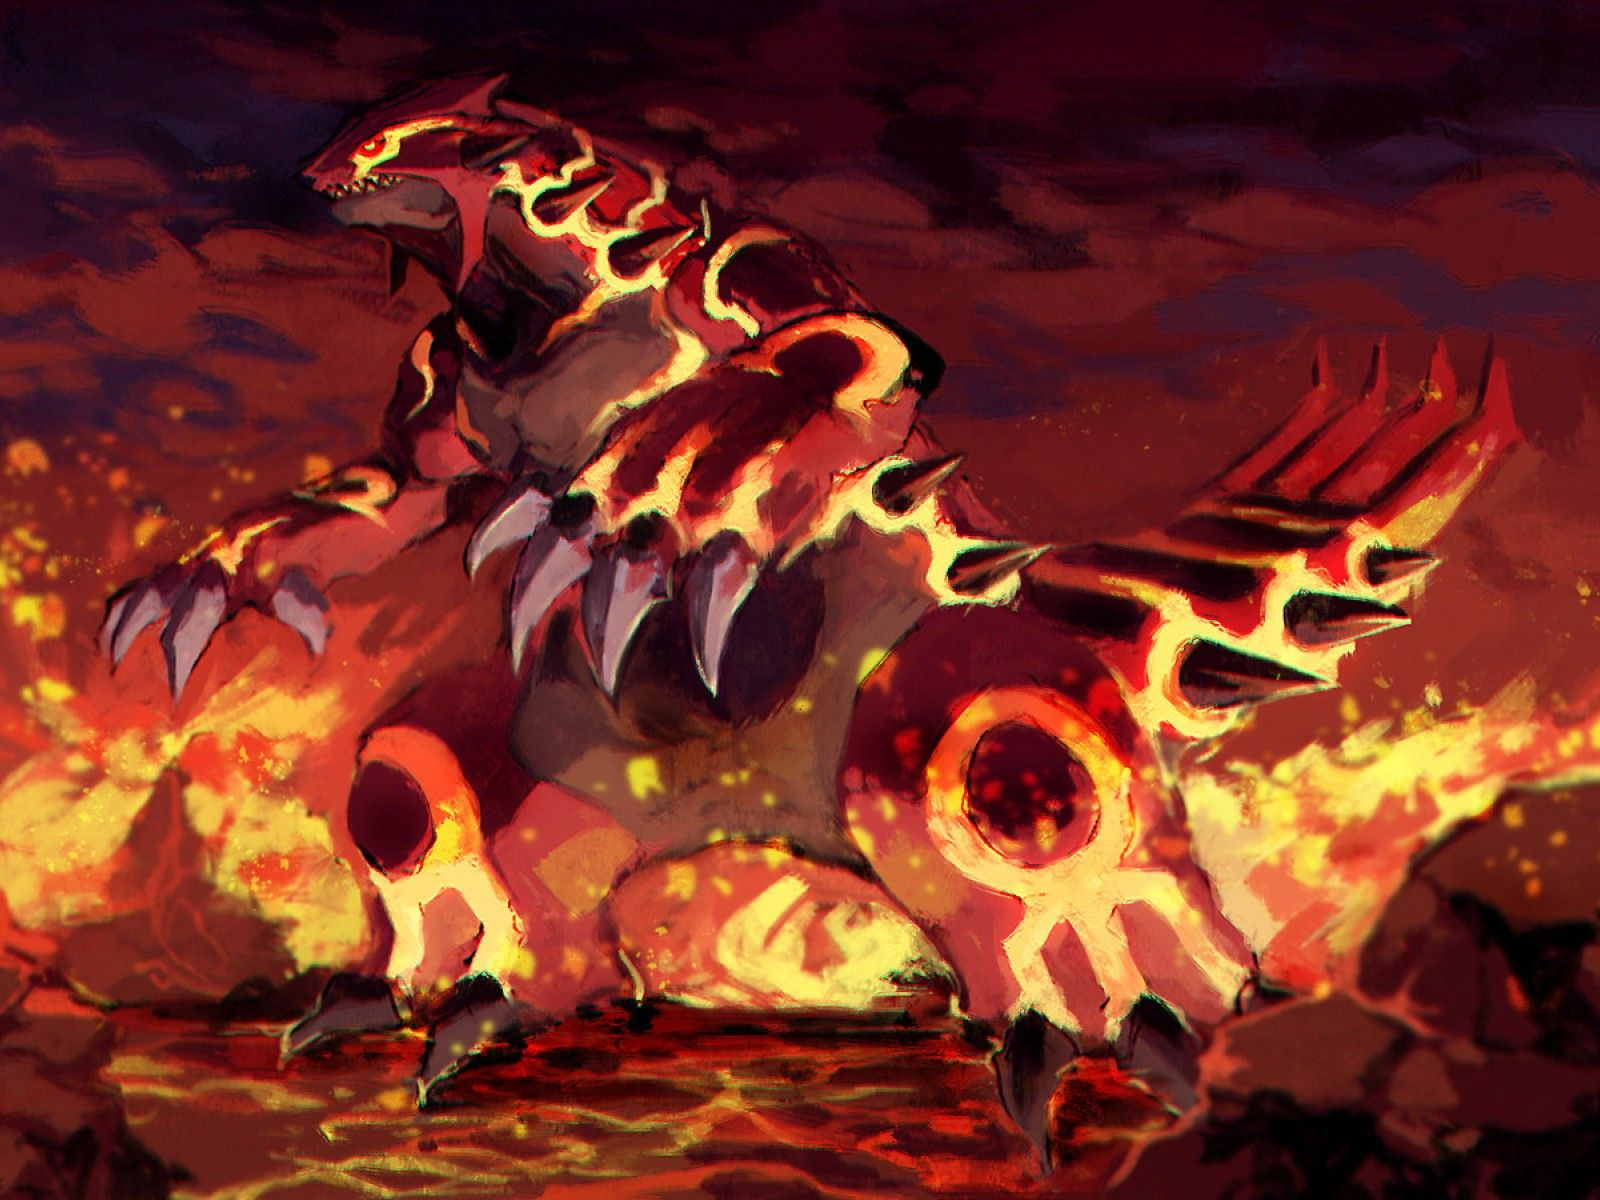 Groudon Pokemon Hd Wallpaper Wallpapers Wallpapersgroudon Ruby Plush Kyogre Movie Rayquaza 1600x1200